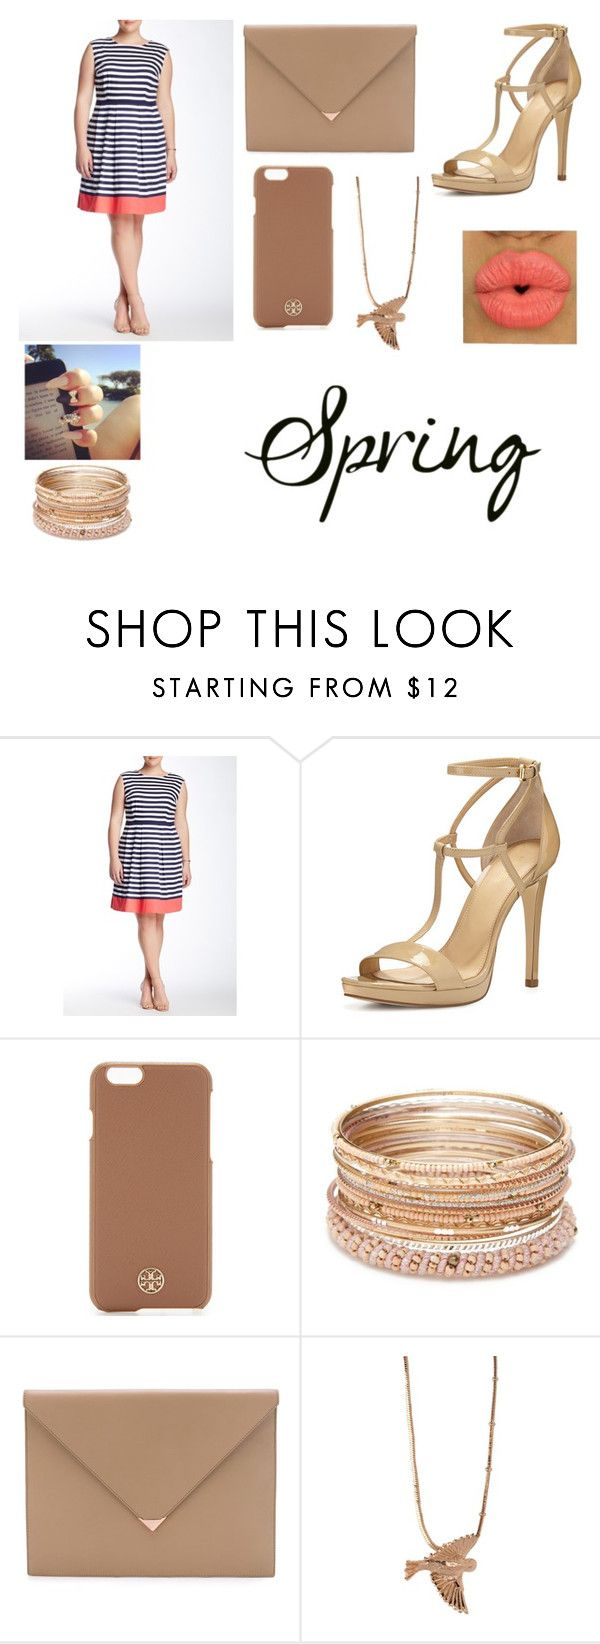 """Big Girls Rock"" by divalover109 ❤ liked on Polyvore featuring Sandra Darren, MICHAEL Michael Kors, Tory Burch, Red Camel, Alexander Wang, PP From Longwy and plus size dresses"